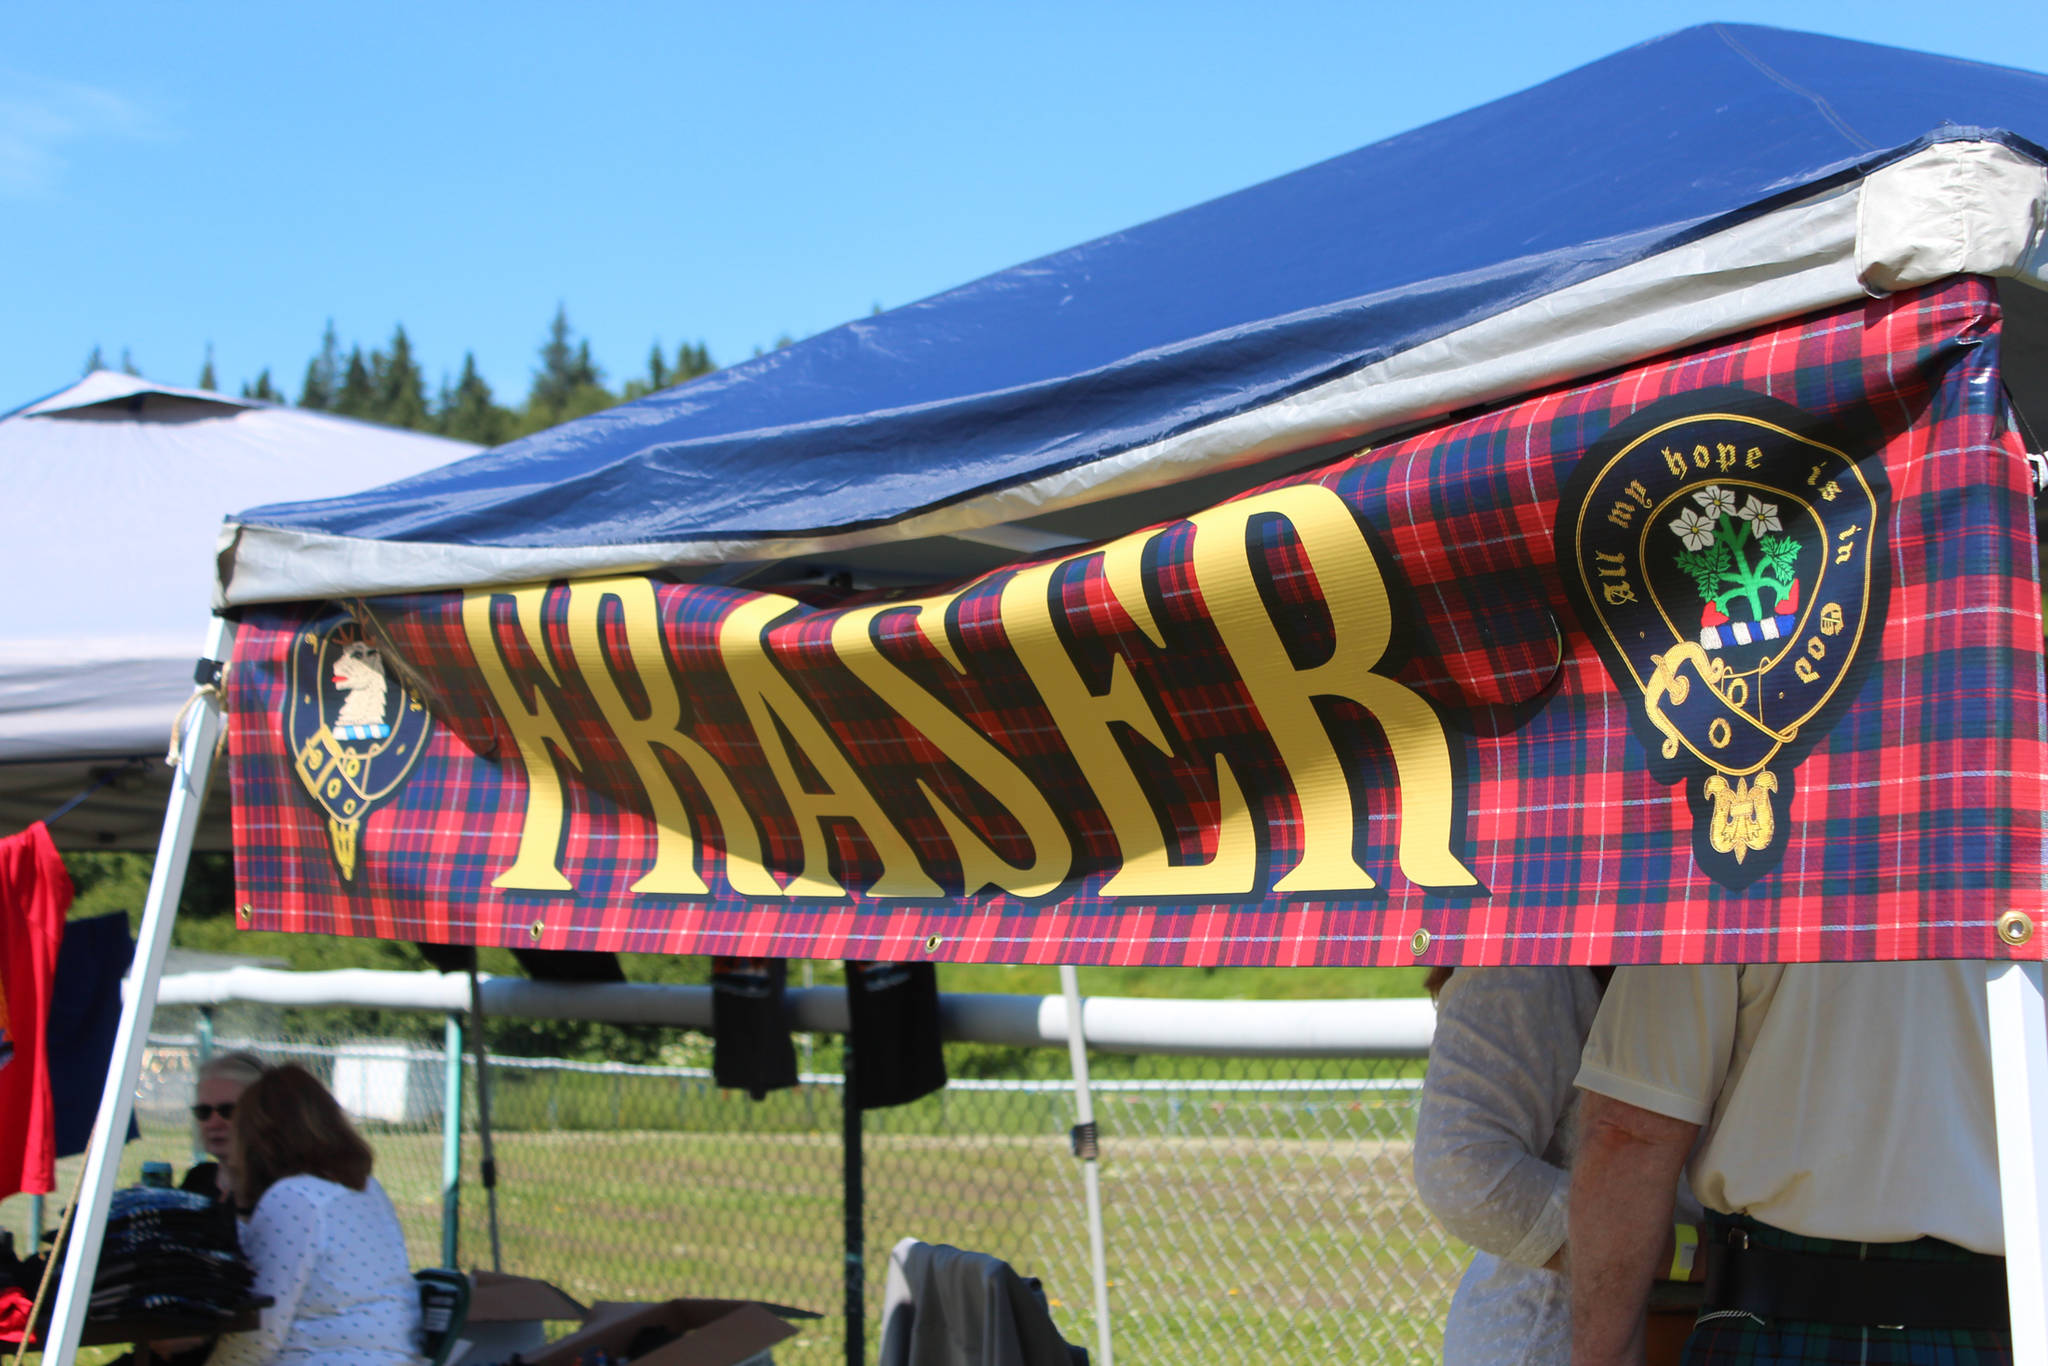 A clan booth advertises the Fraser clan at this year's Kachemak Bay Scottish Highland Games on Saturday, July 7, 2018 at Karen Hornaday Park in Homer, Alaska. (Photo by Megan Pacer/Homer News)